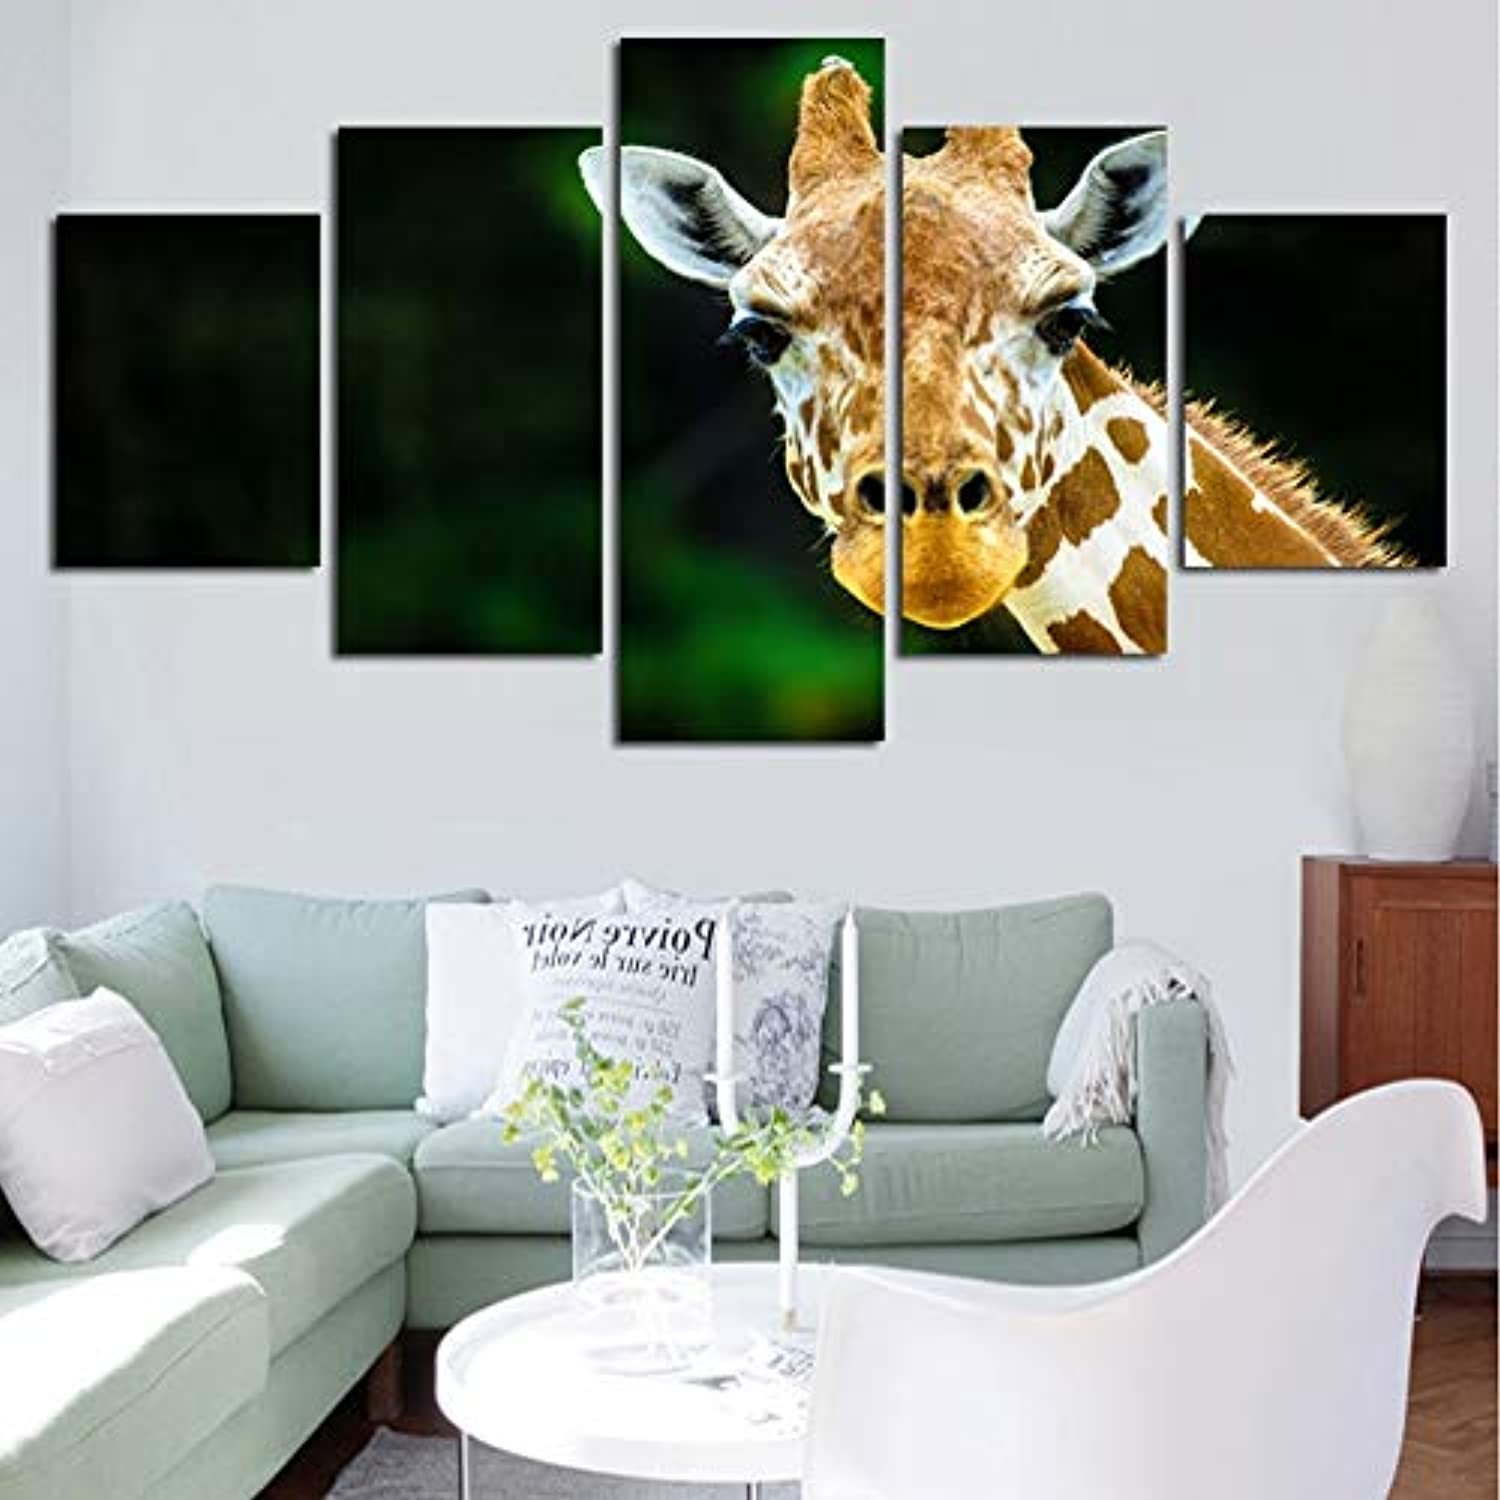 2b2da2635b16 Wall Art Painting On Canvas Wall Decor Posters 5 Piece Pcs African ...